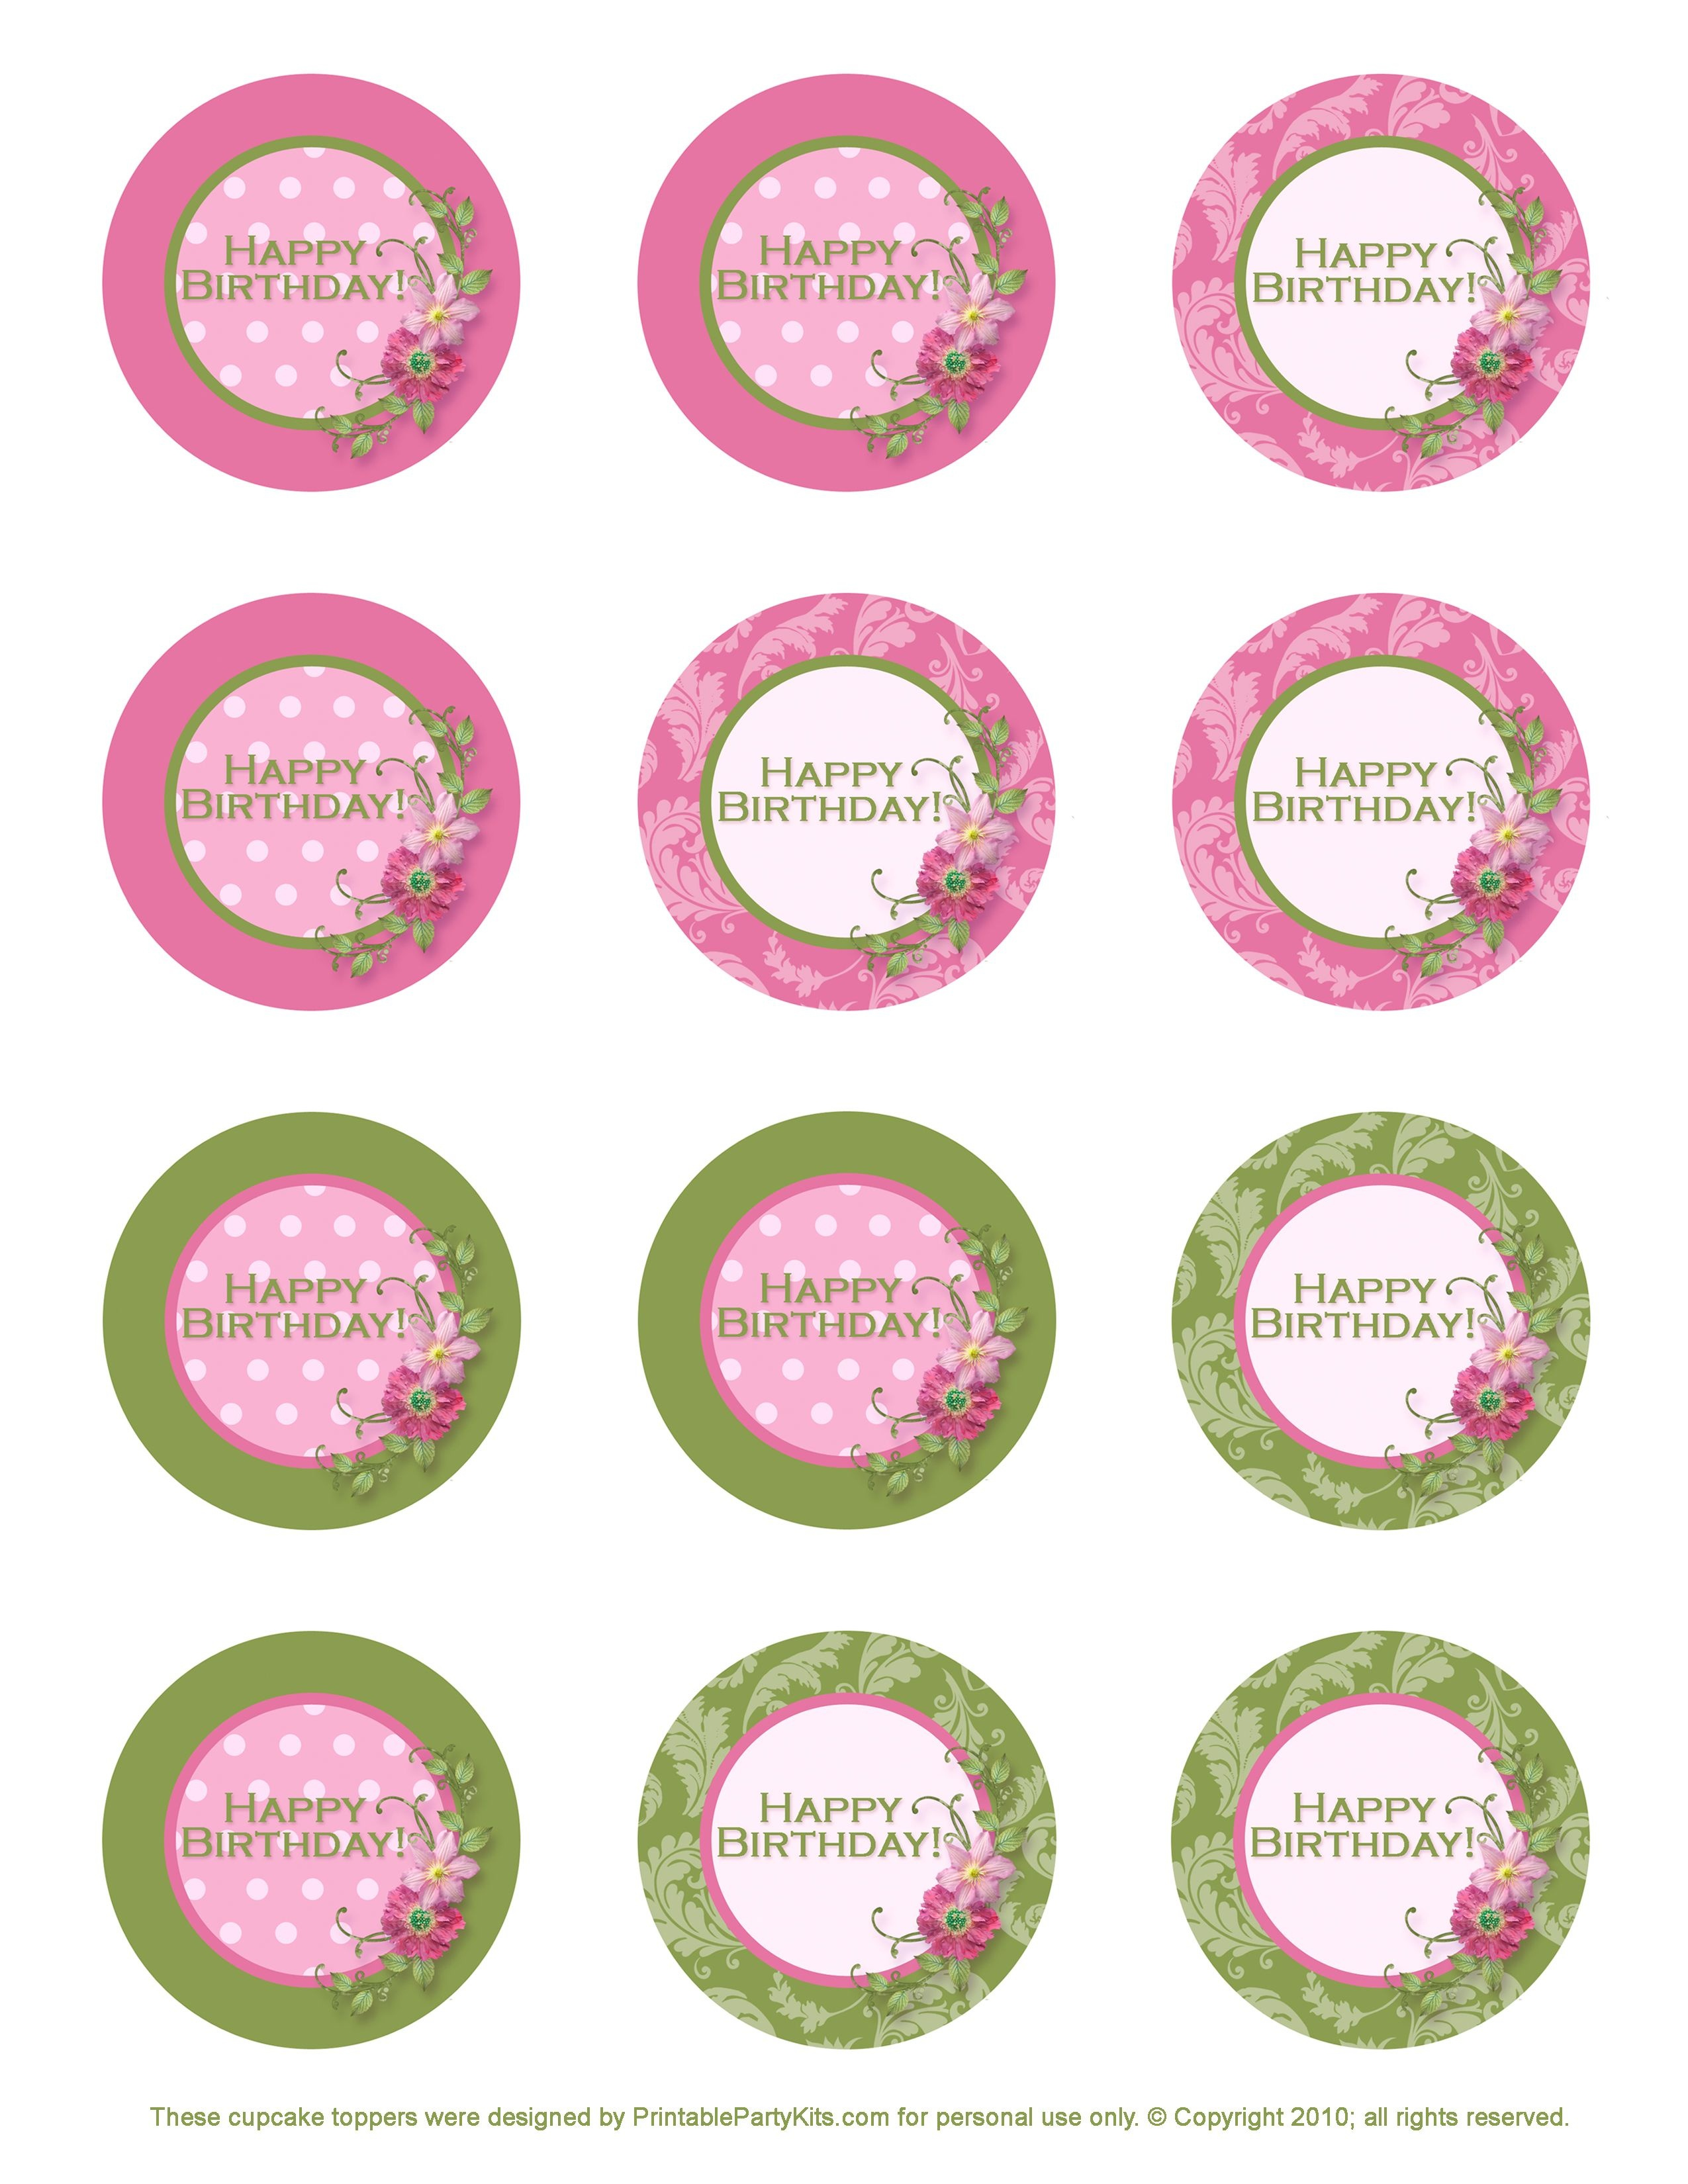 Free Printable Birthday Cupcake Toppers | Crafts | Birthday Cupcakes - Cupcake Topper Templates Free Printable